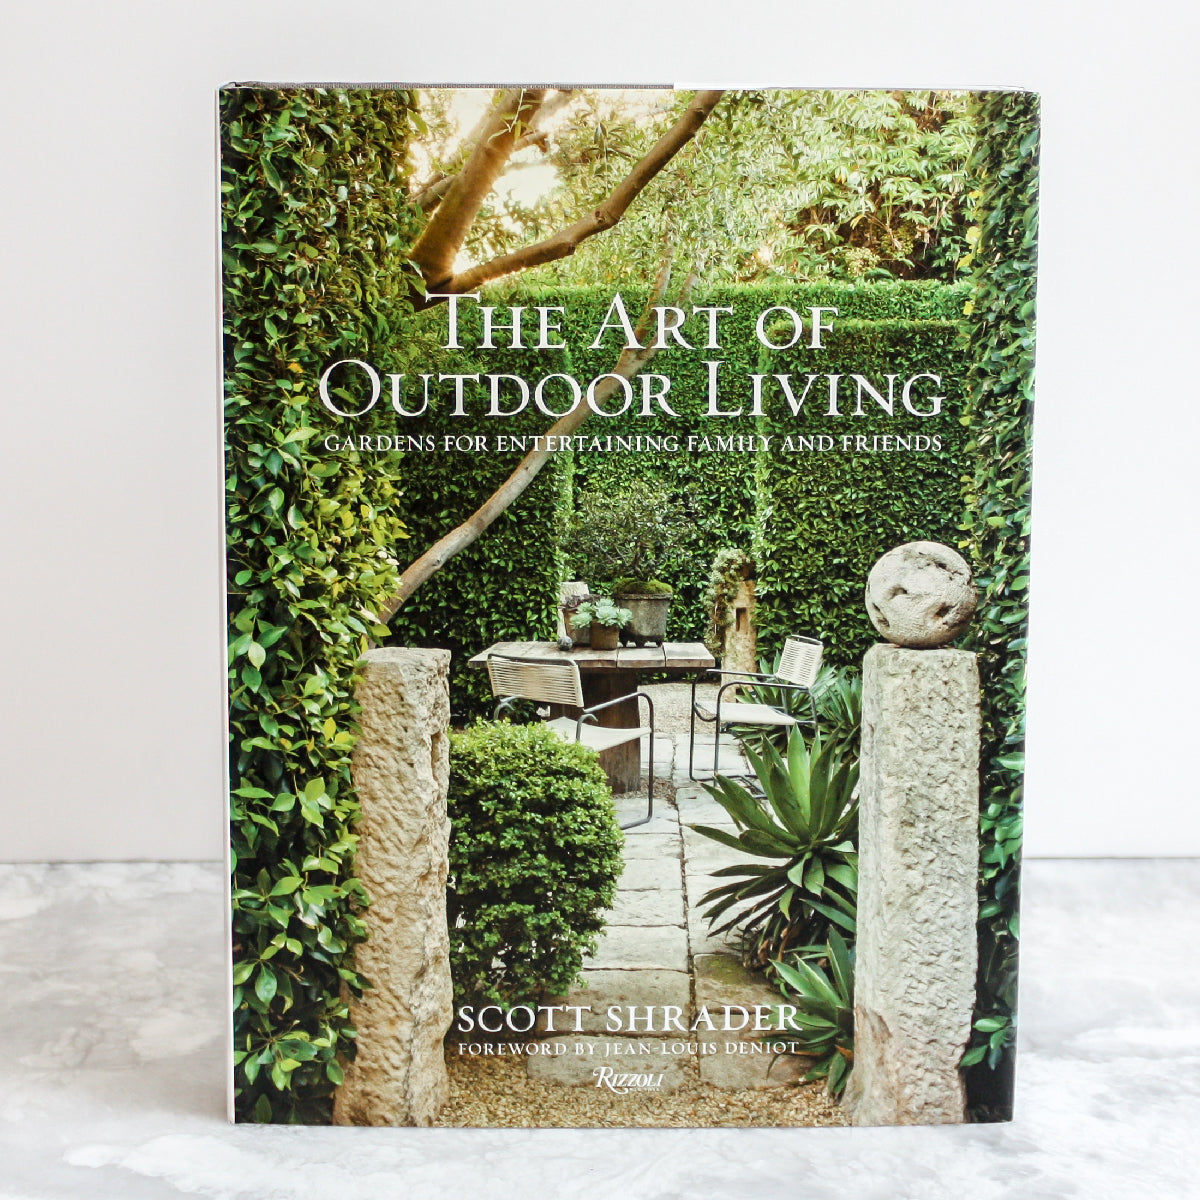 The Art of Outdoor Living published by Random House/Penguin